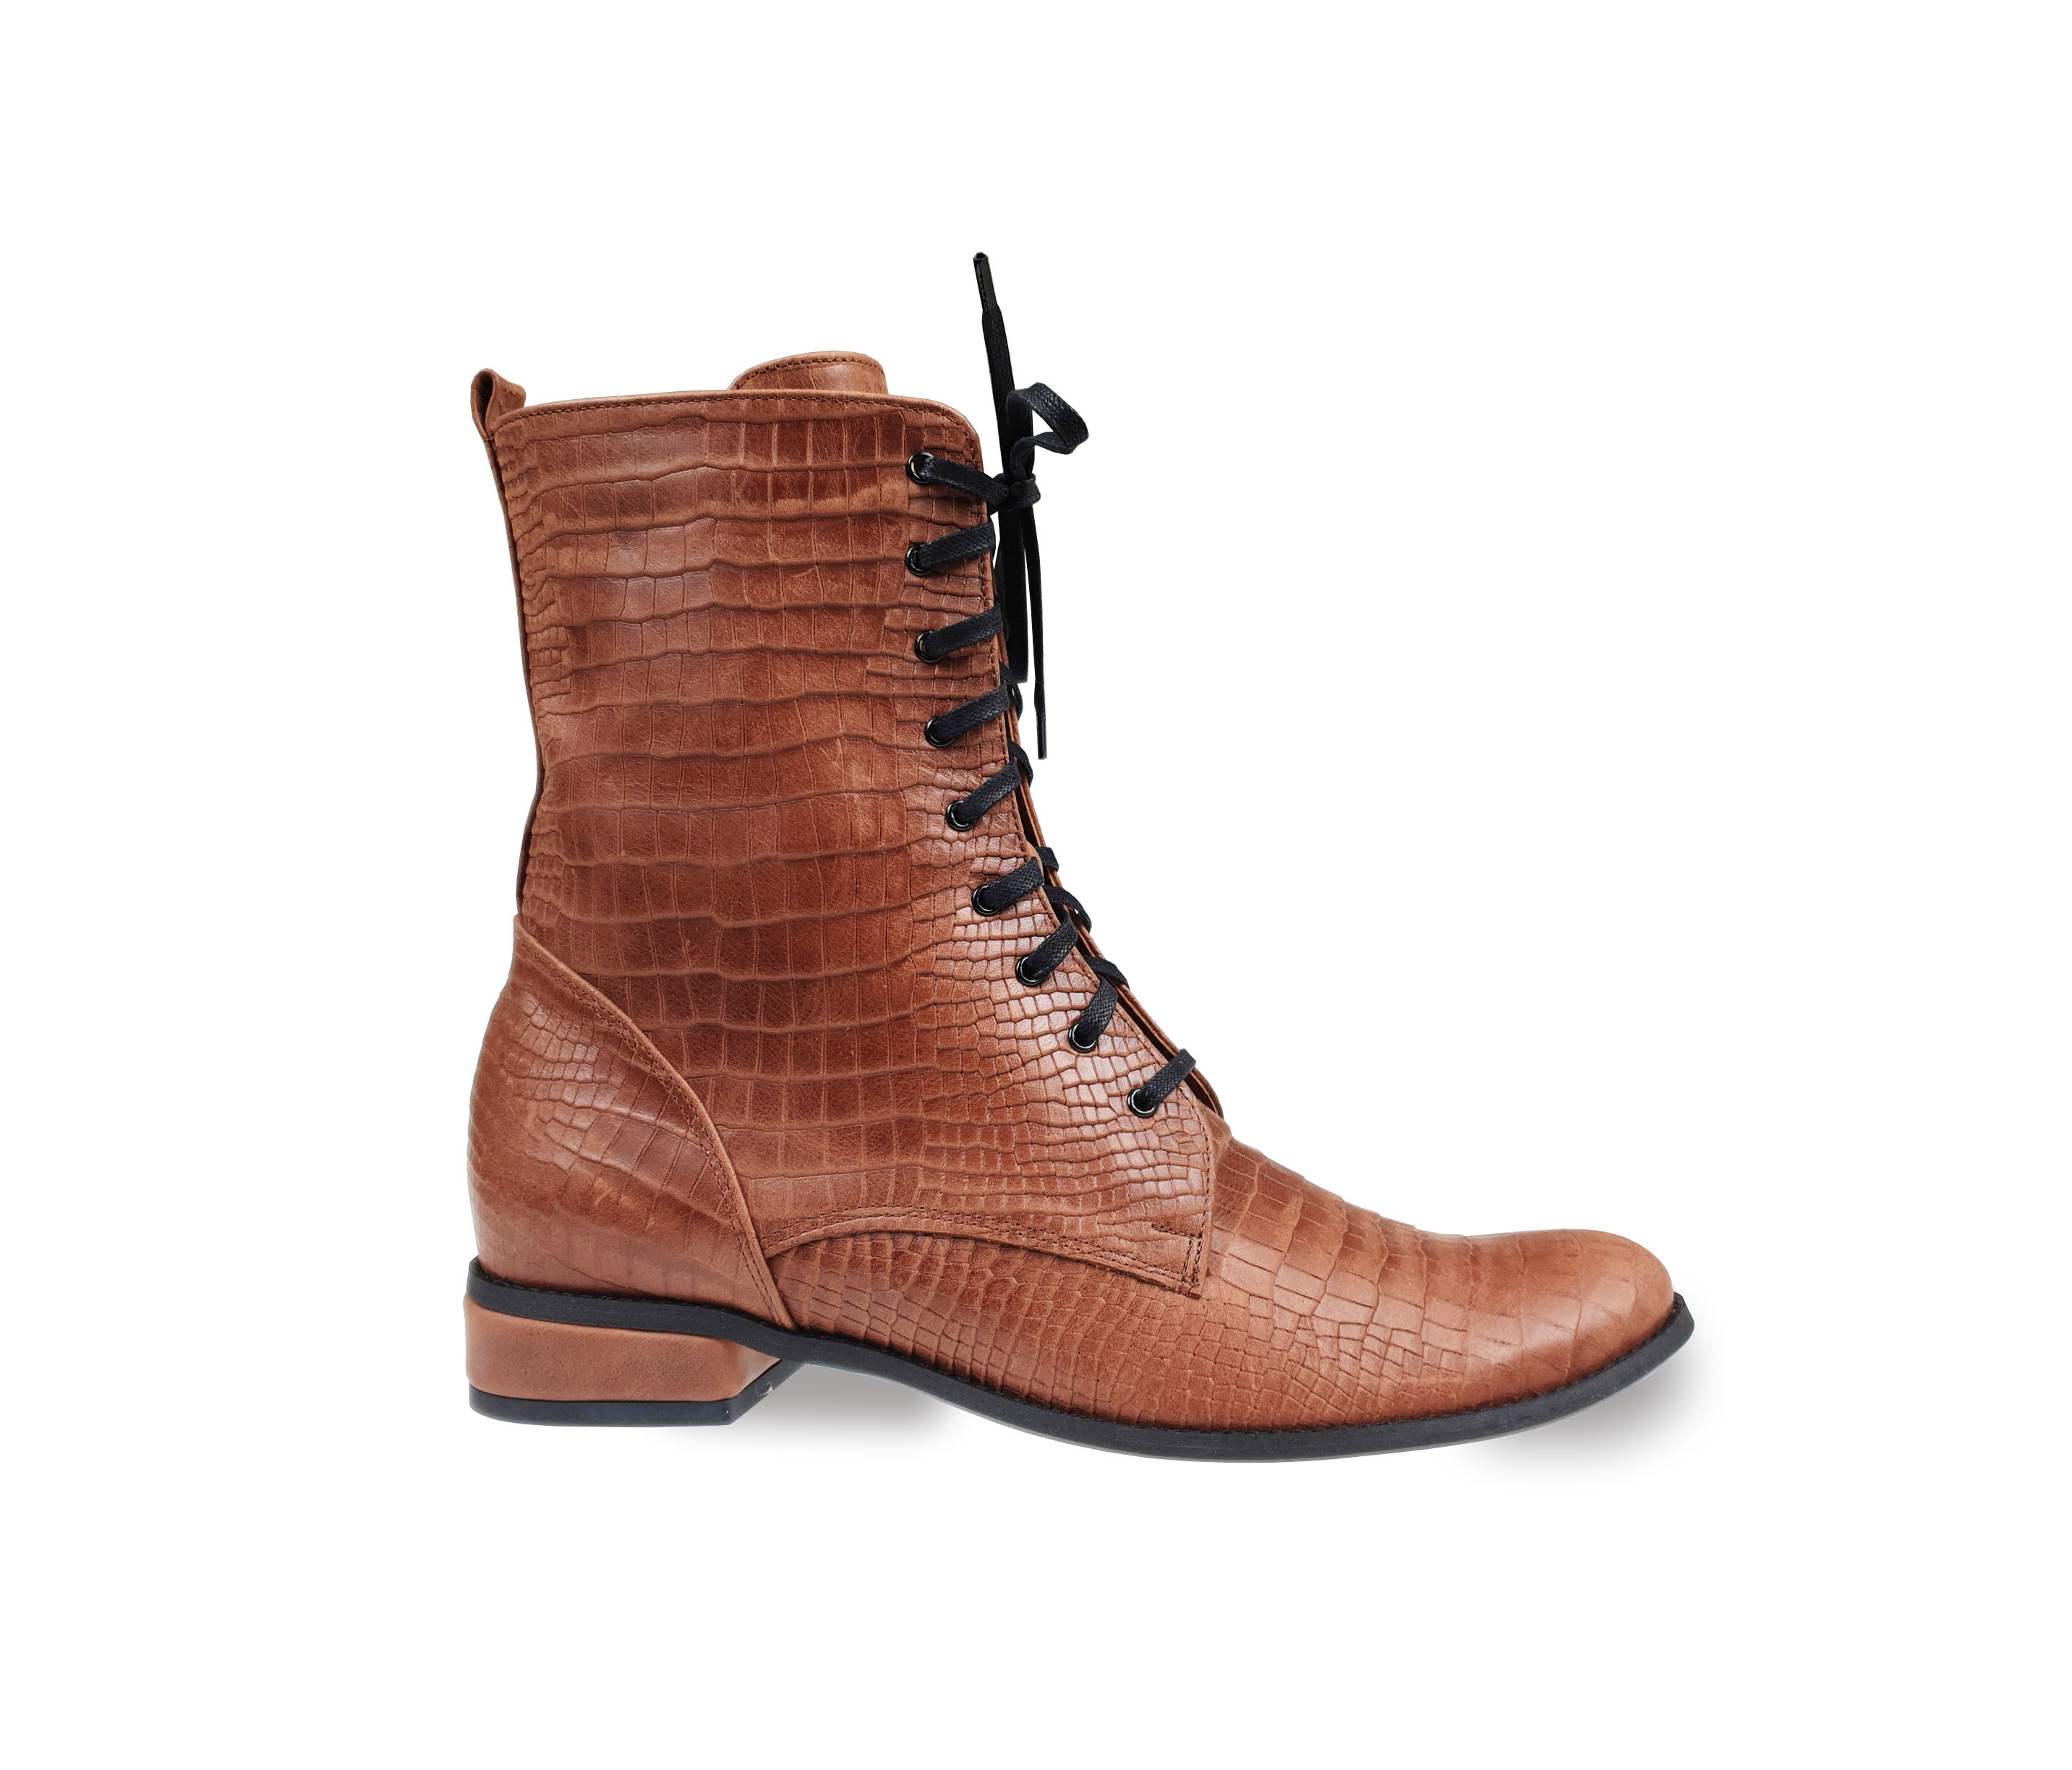 Yaga brown leather lace-up ankle boots